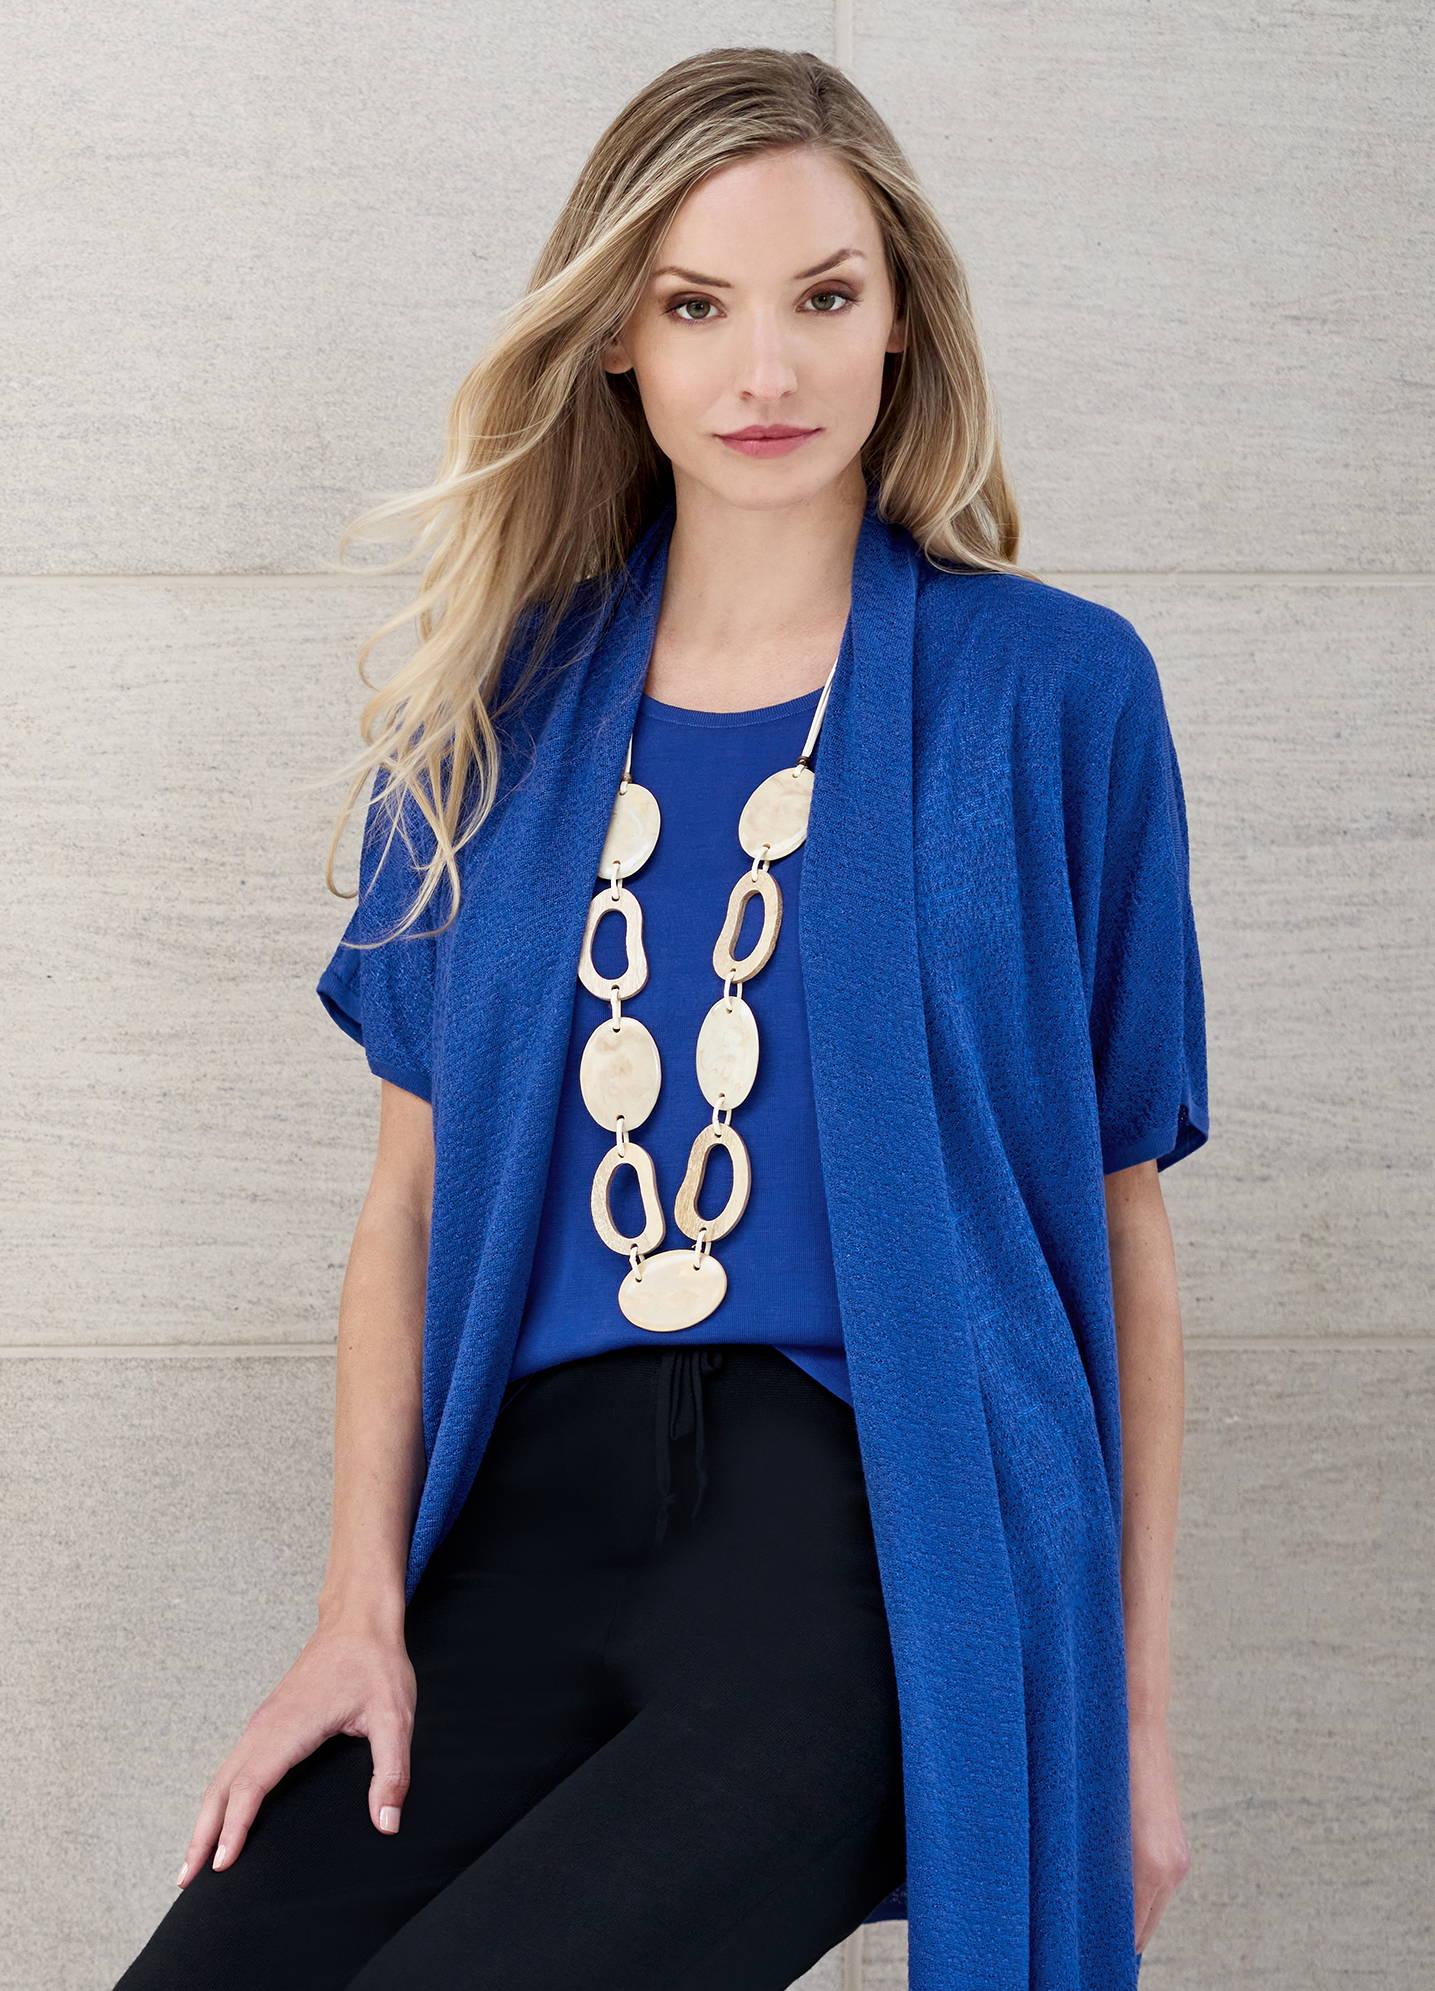 Relaxed Drape Knit Cardigan and Coordinating Classic Knit Tank Top in Blue Flame